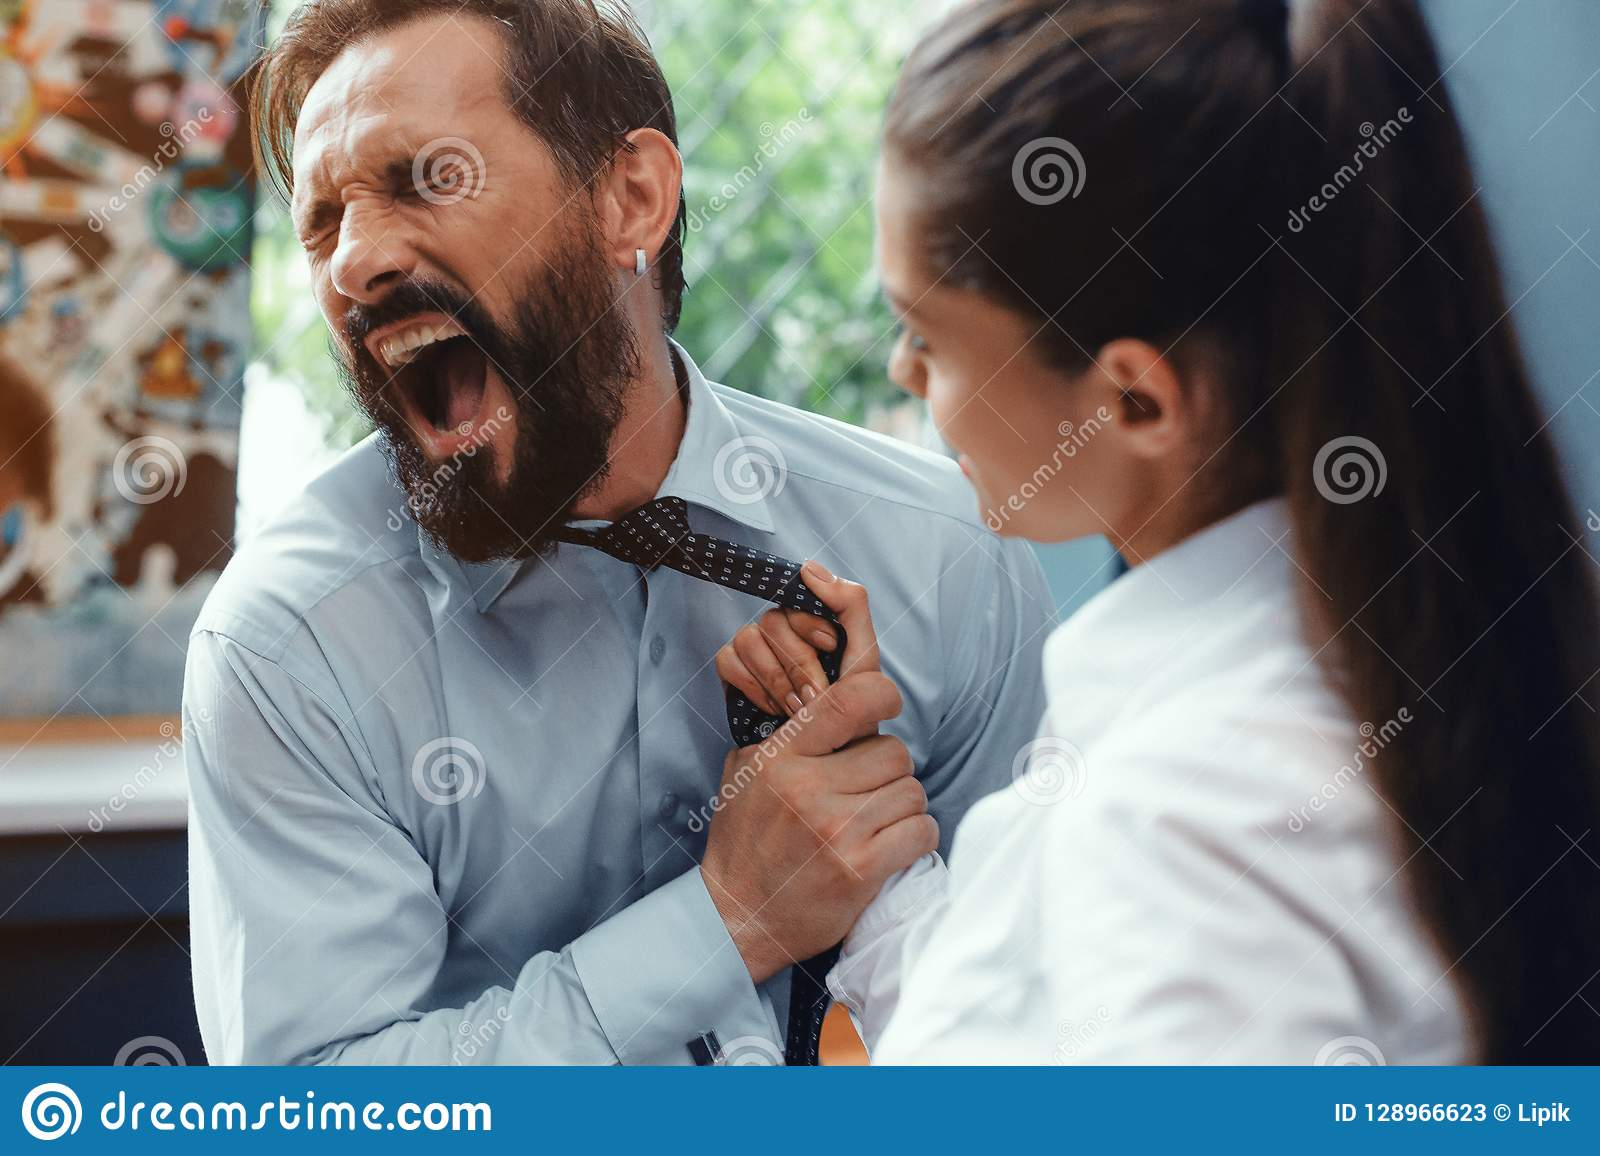 Conflict And Problems On Workplace Stock Image